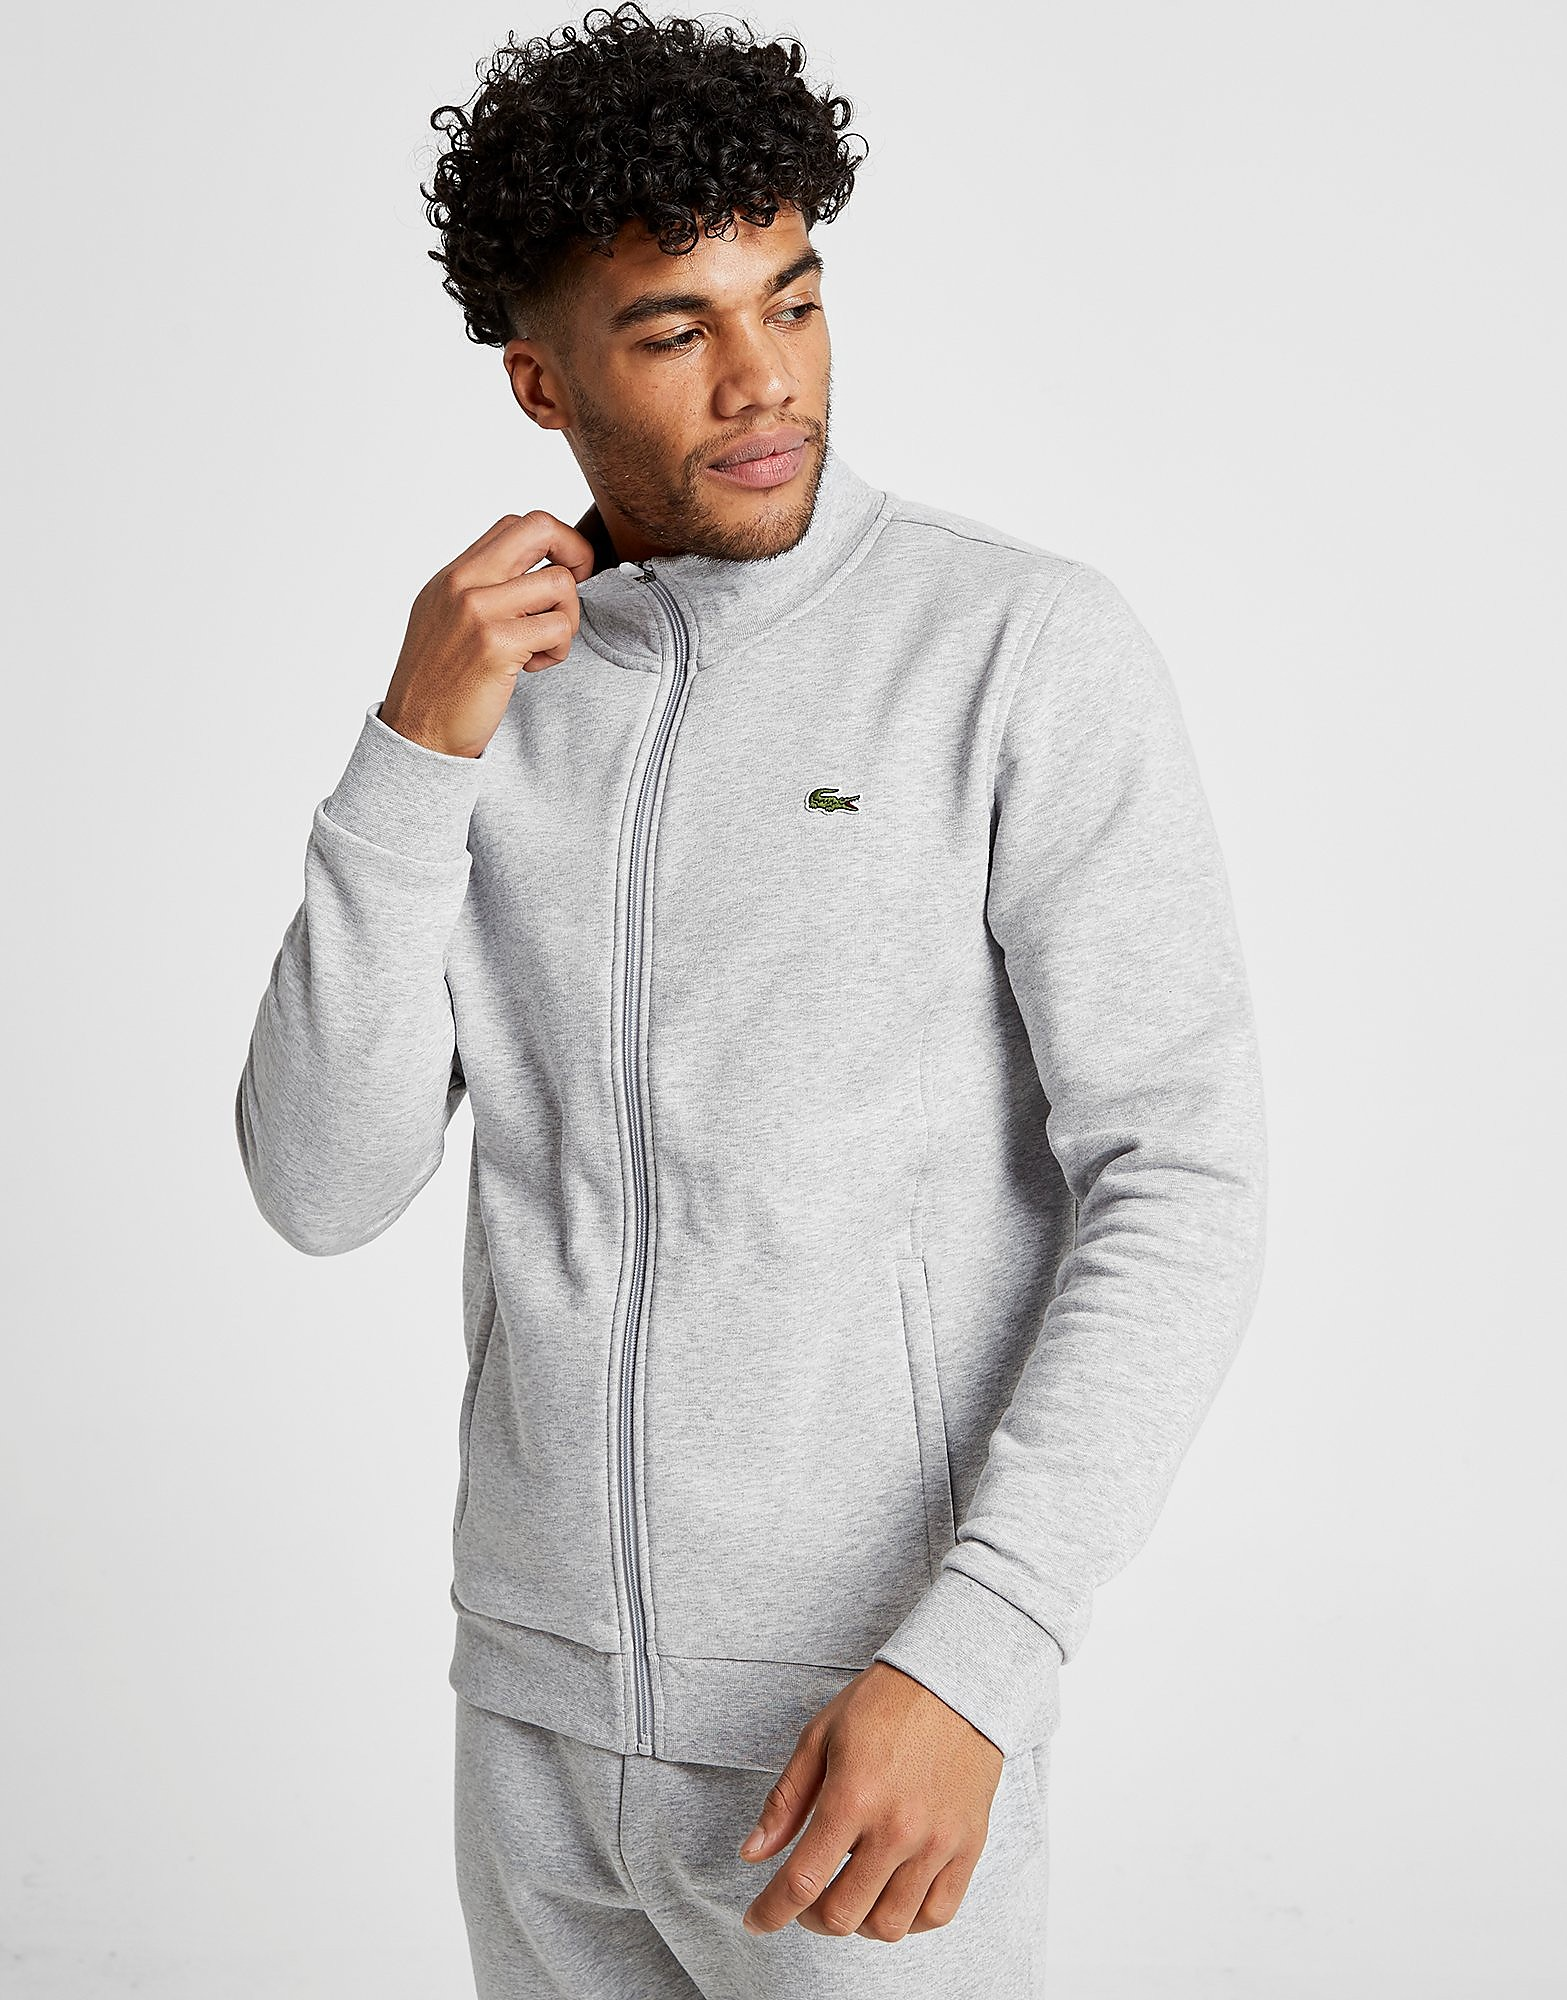 Lacoste Core Fleece Track Top - Grijs - Heren